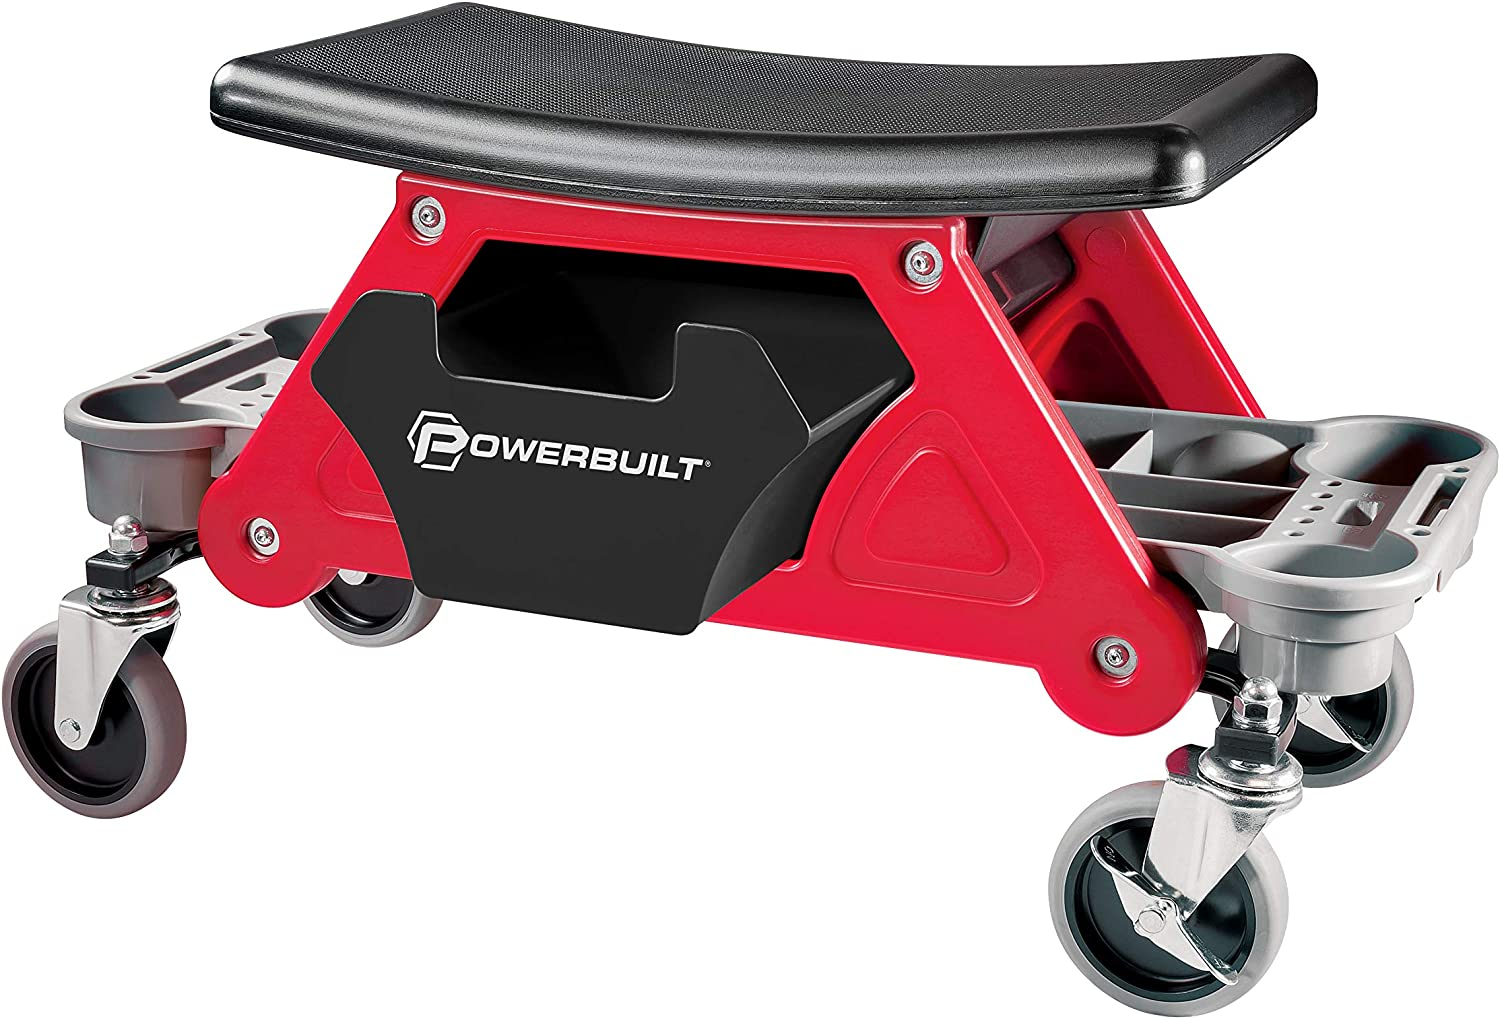 Powerbuilt Heavy Duty Roller Mechanics Seat and Brake Stool with 4-in. Rubber Swivel Casters Roll Over Anything, Big Seating Platform, Slide Out Tool Trays and Drawer 300 lb. Capacity – 240036: Automotive